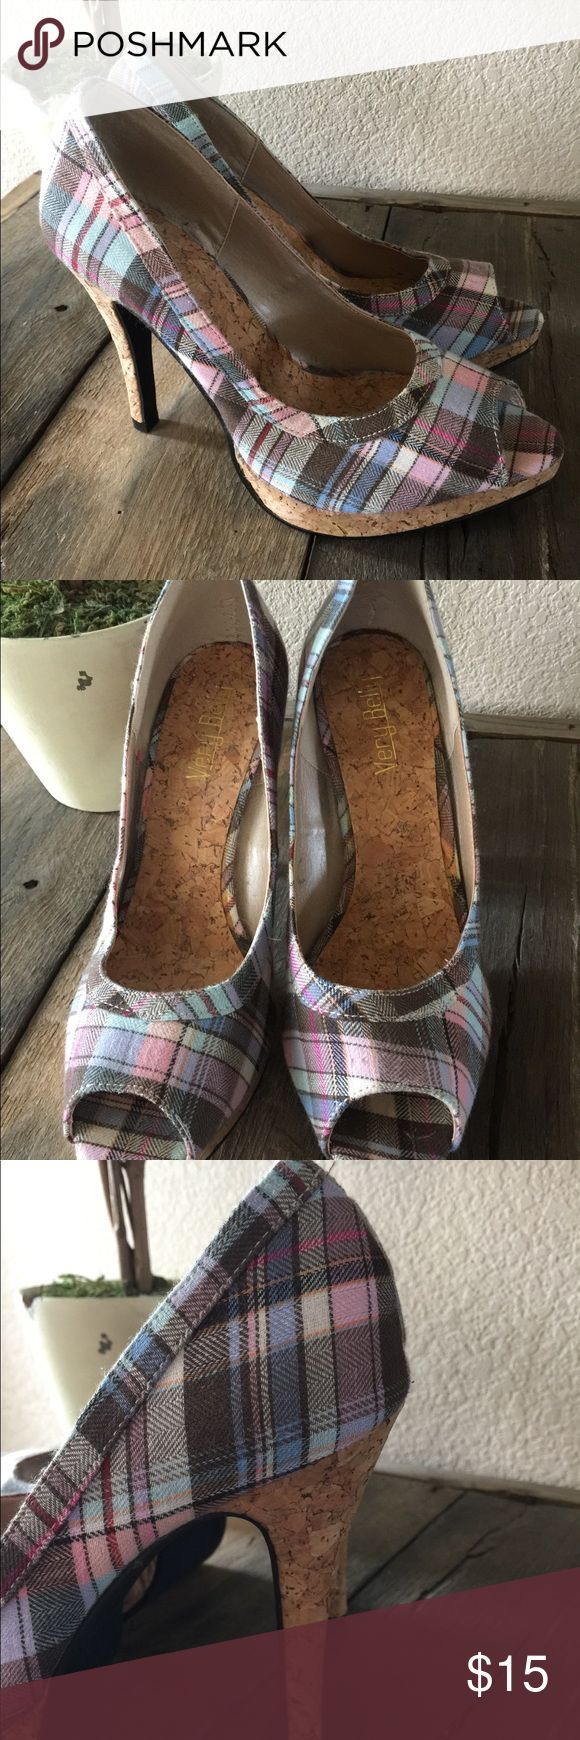 NBW Multi color high heels with cork heel. Gorgeous, just never wore! Brand new. Size L. (8) Peep toe. Cork heel and under toe. Multicolored. Smoke free home. No box. very belly Shoes Heels